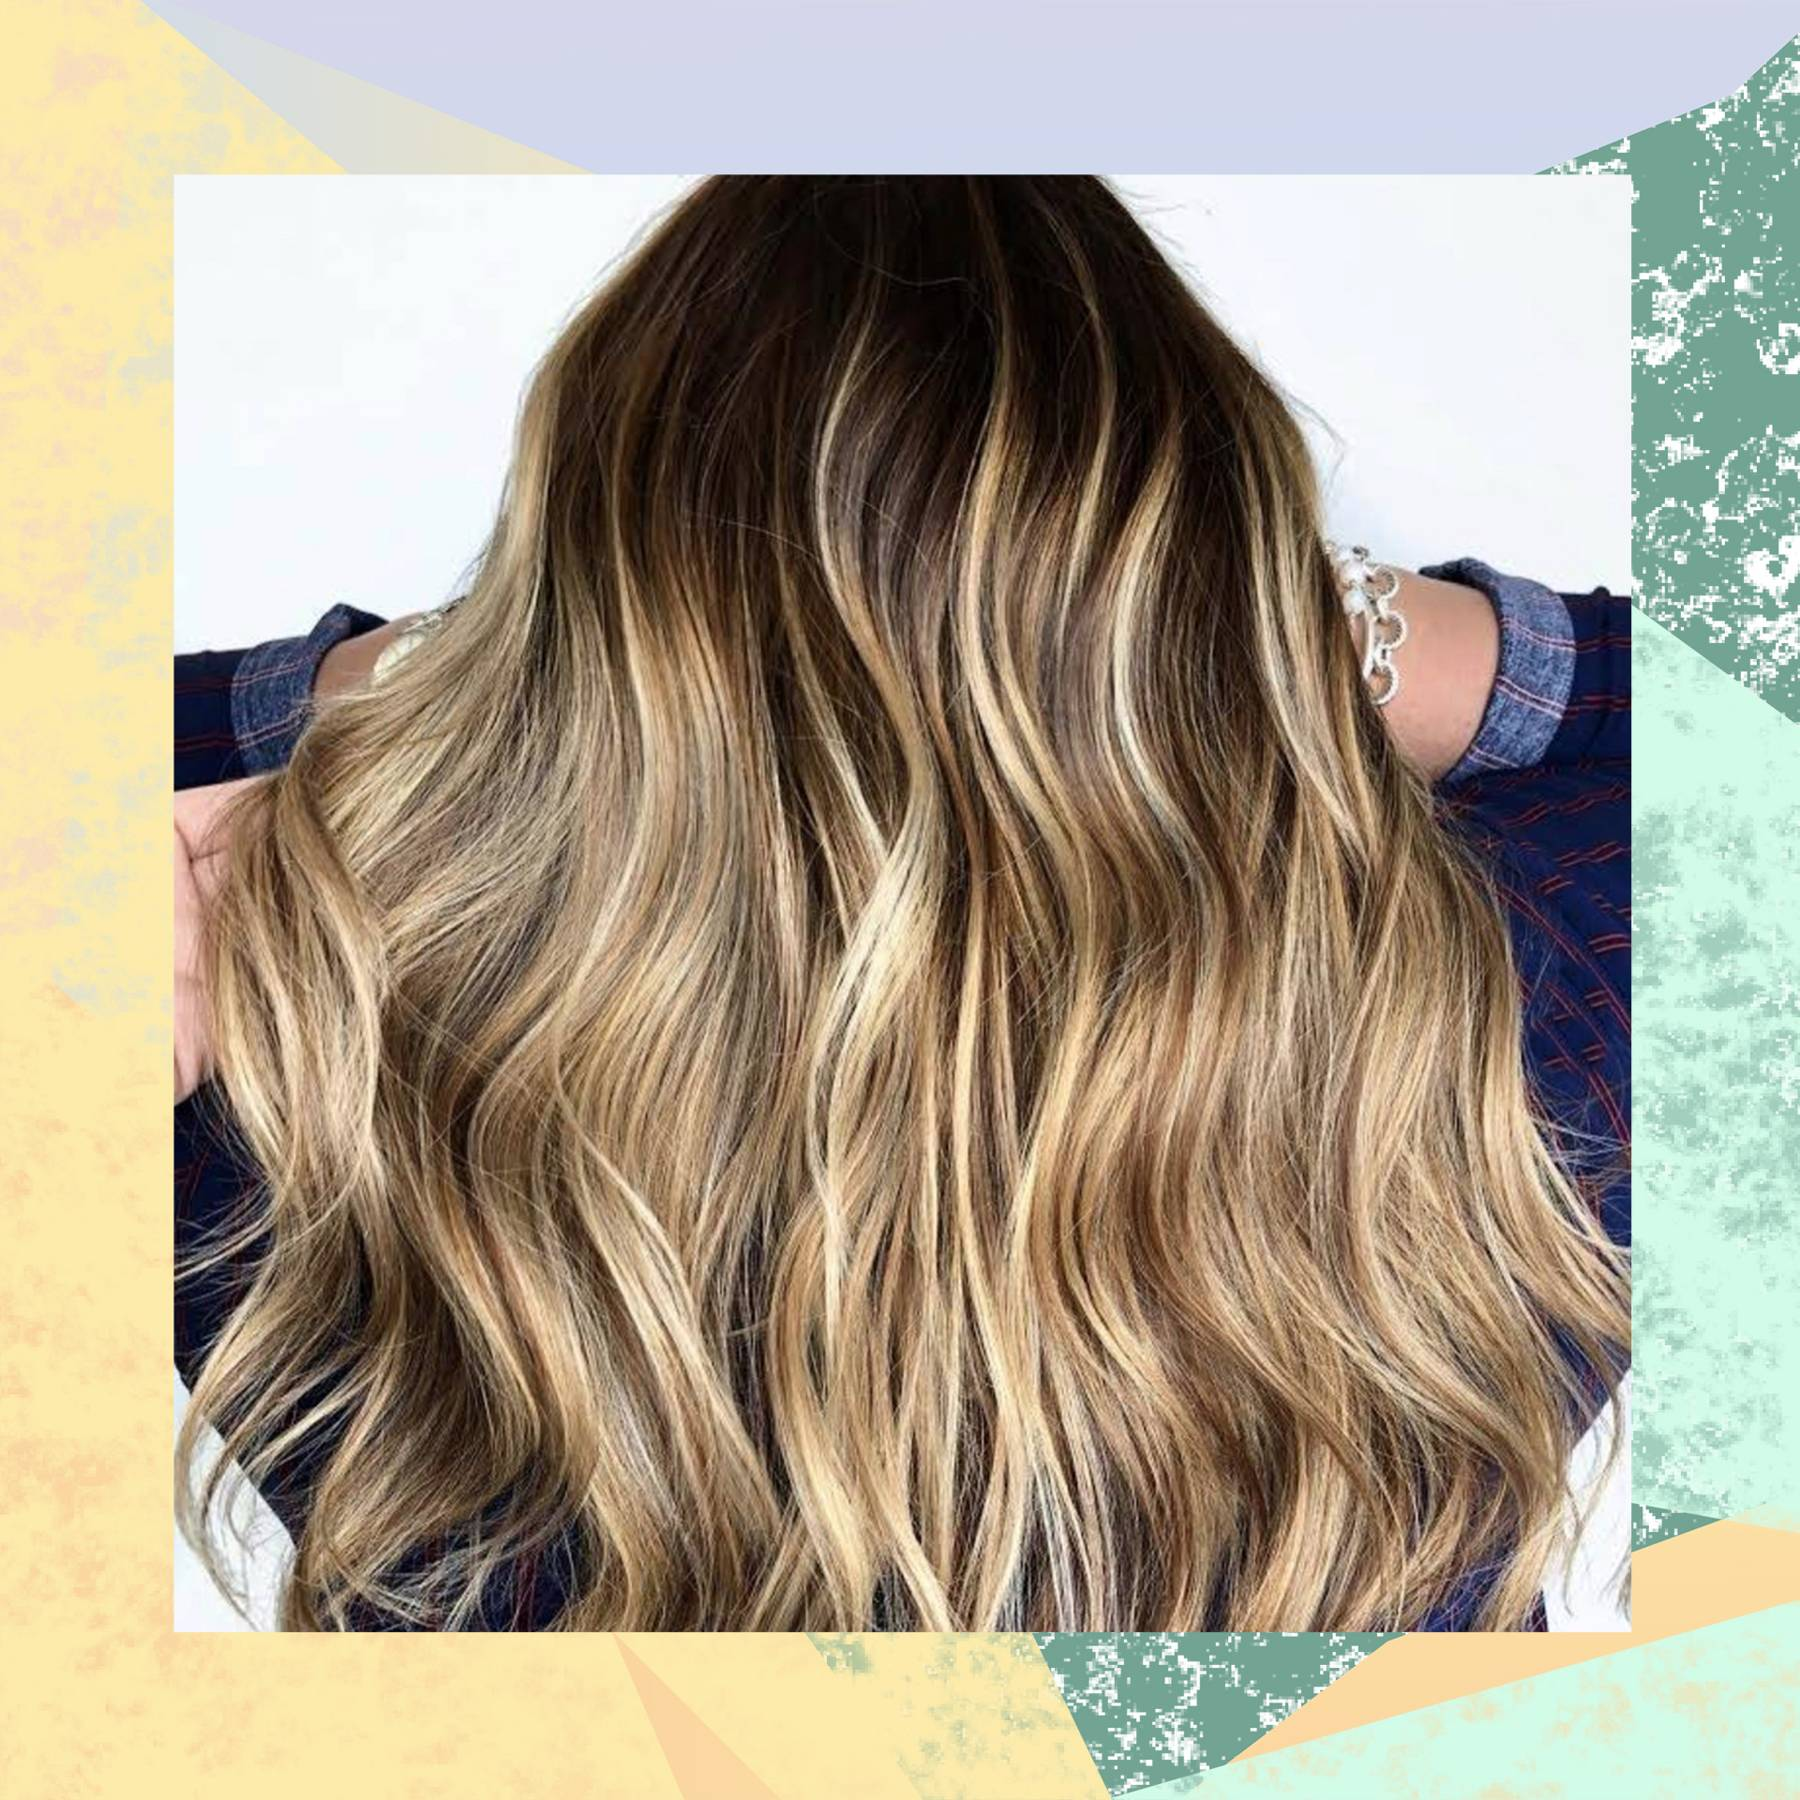 Hairstyles 2018: Hair Ideas, Cut And Colour Inspiration | Glamour UK